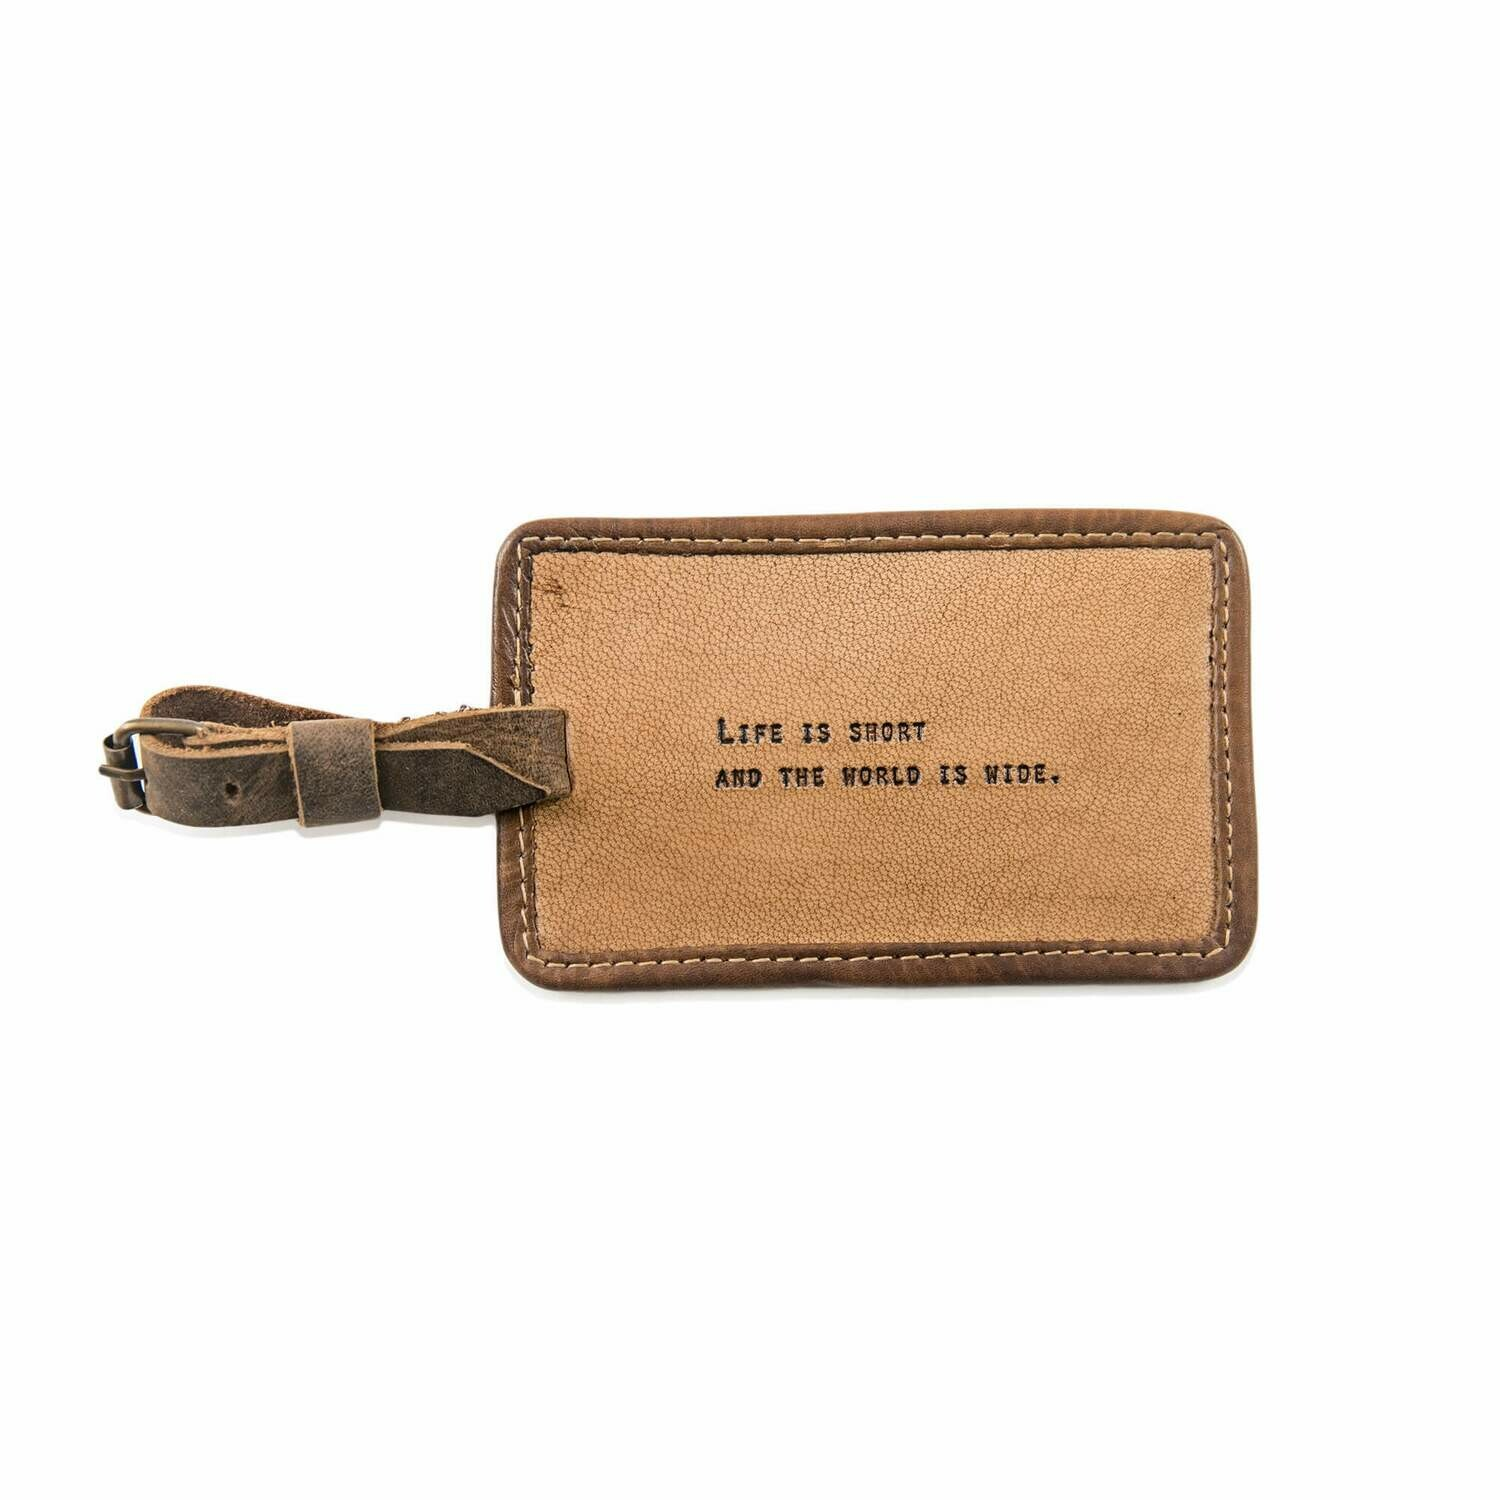 Life is Short Leather Luggage Tag /LJ128